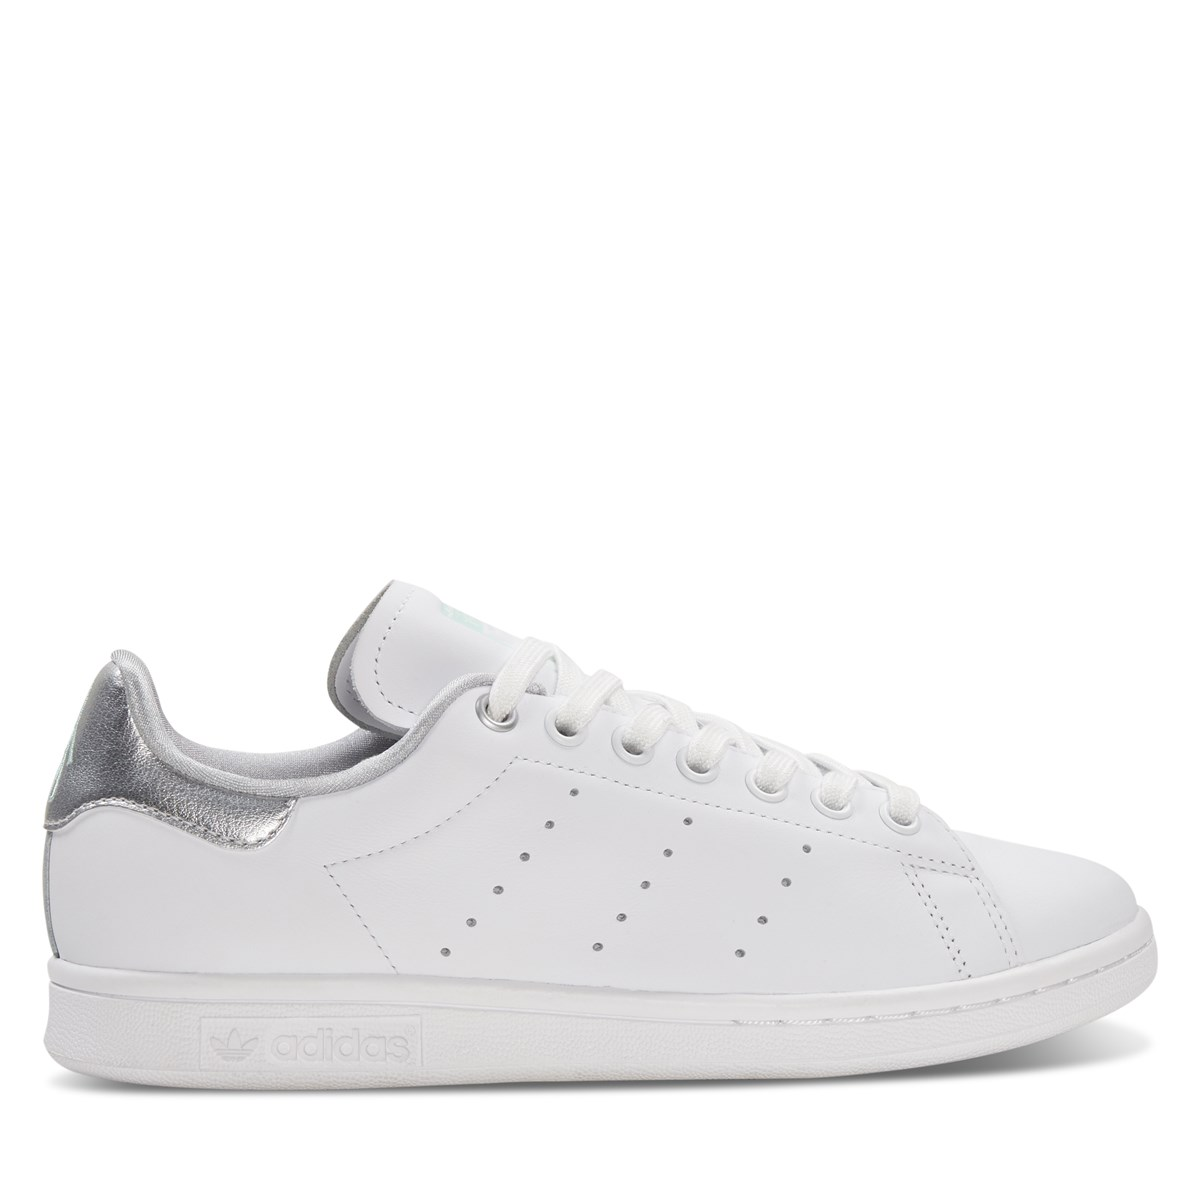 b0140026bdb Women s Stan Smith Sneakers in White. Previous. default view